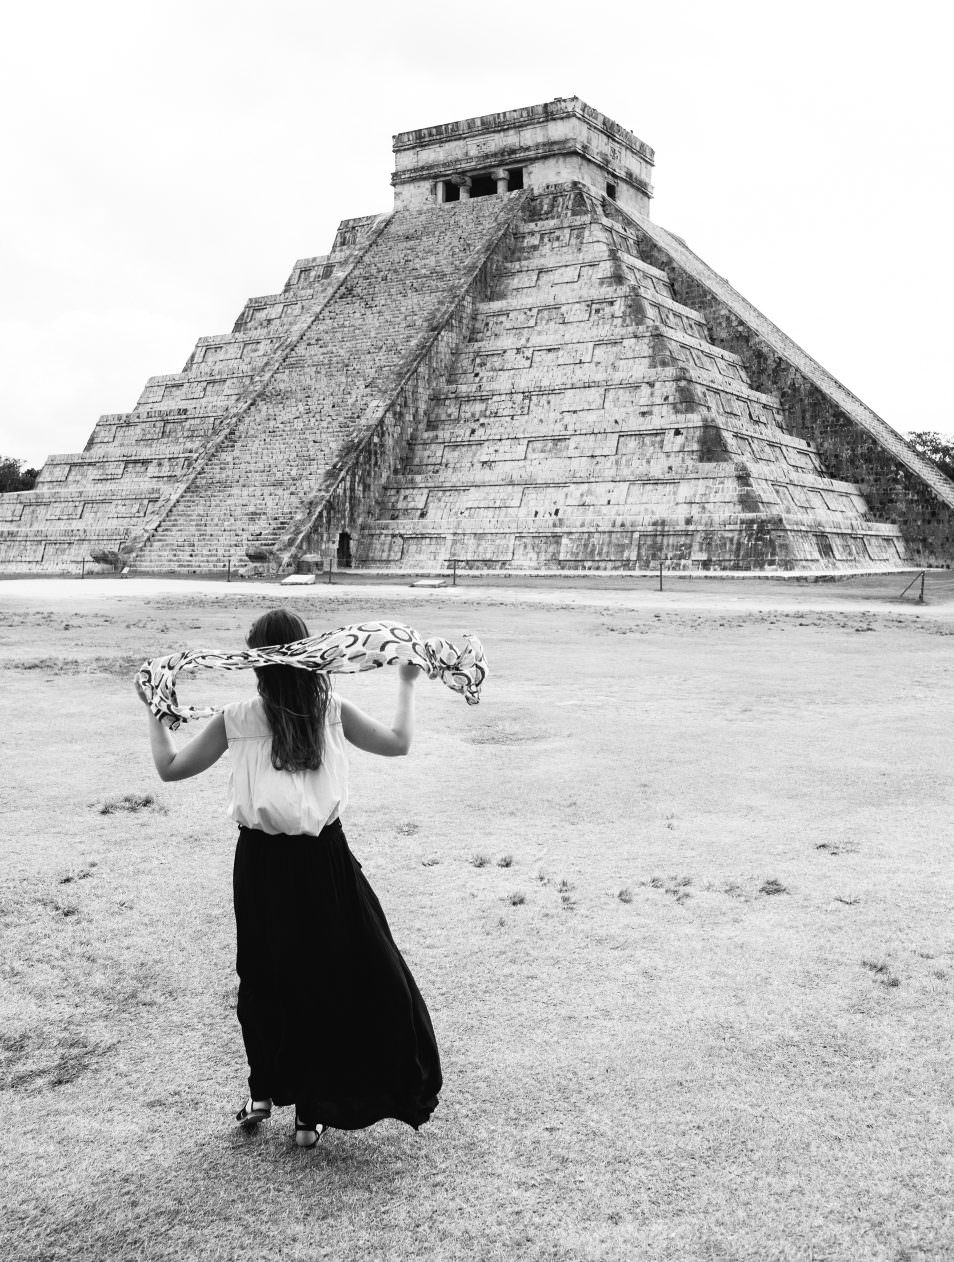 A faire au Yucatan, Mexique - Chichen Itza